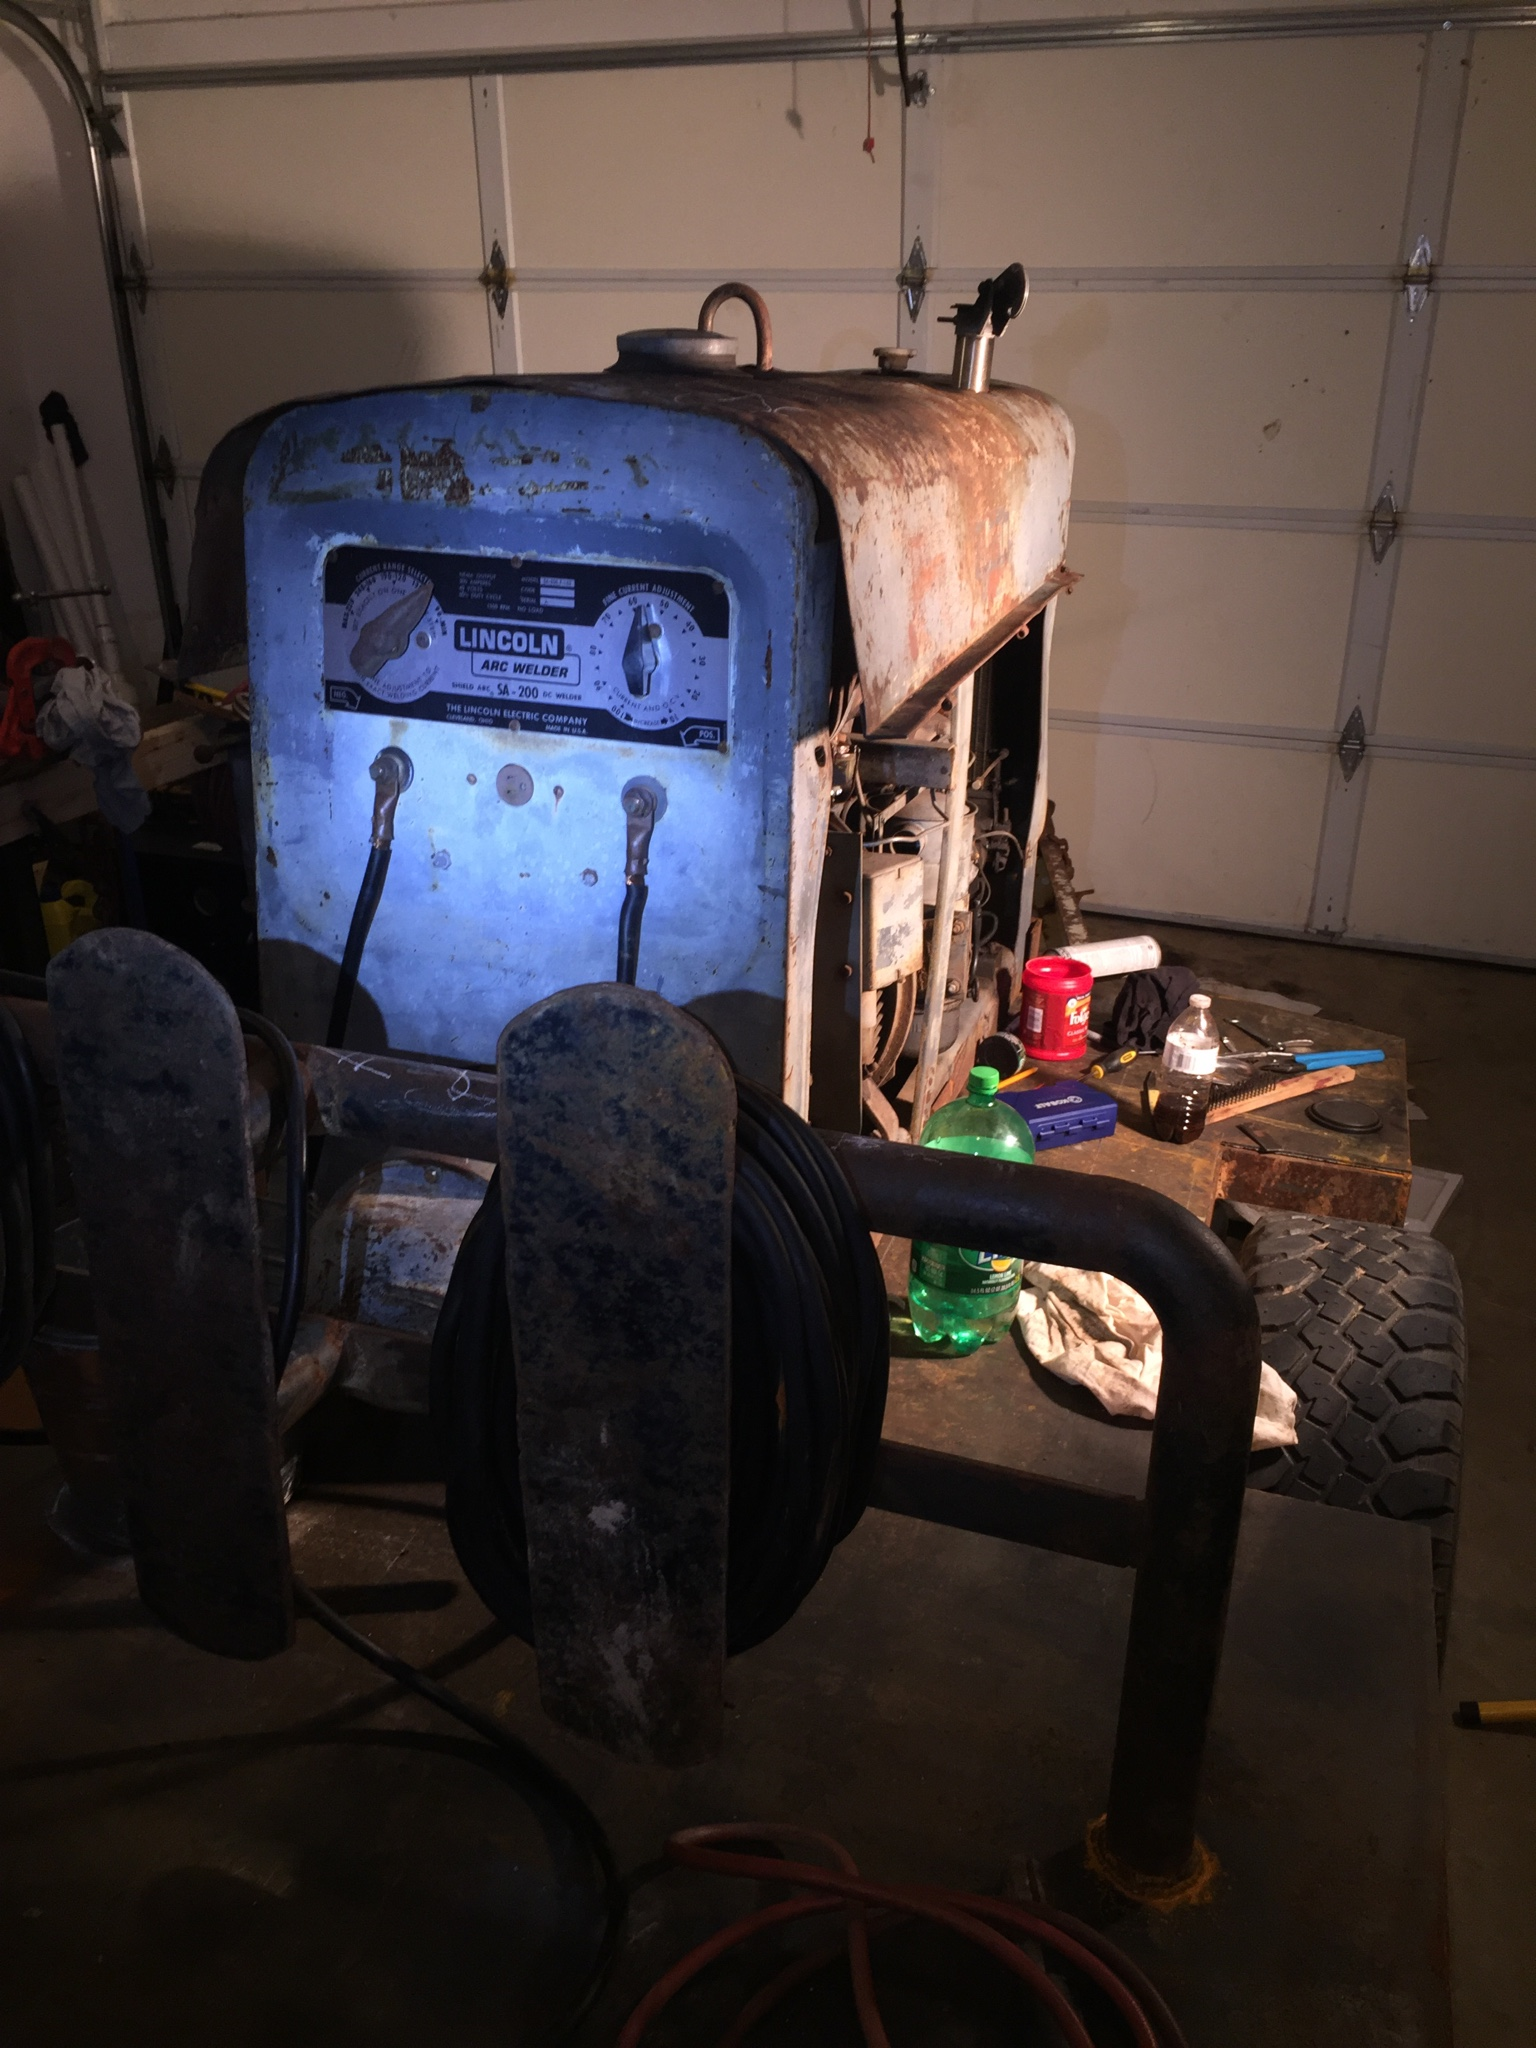 Different Way To Find Year Of Sa 200 F163 Lincoln Welder Here Are Some Pictures I Have It Dont Know If That Helps Any